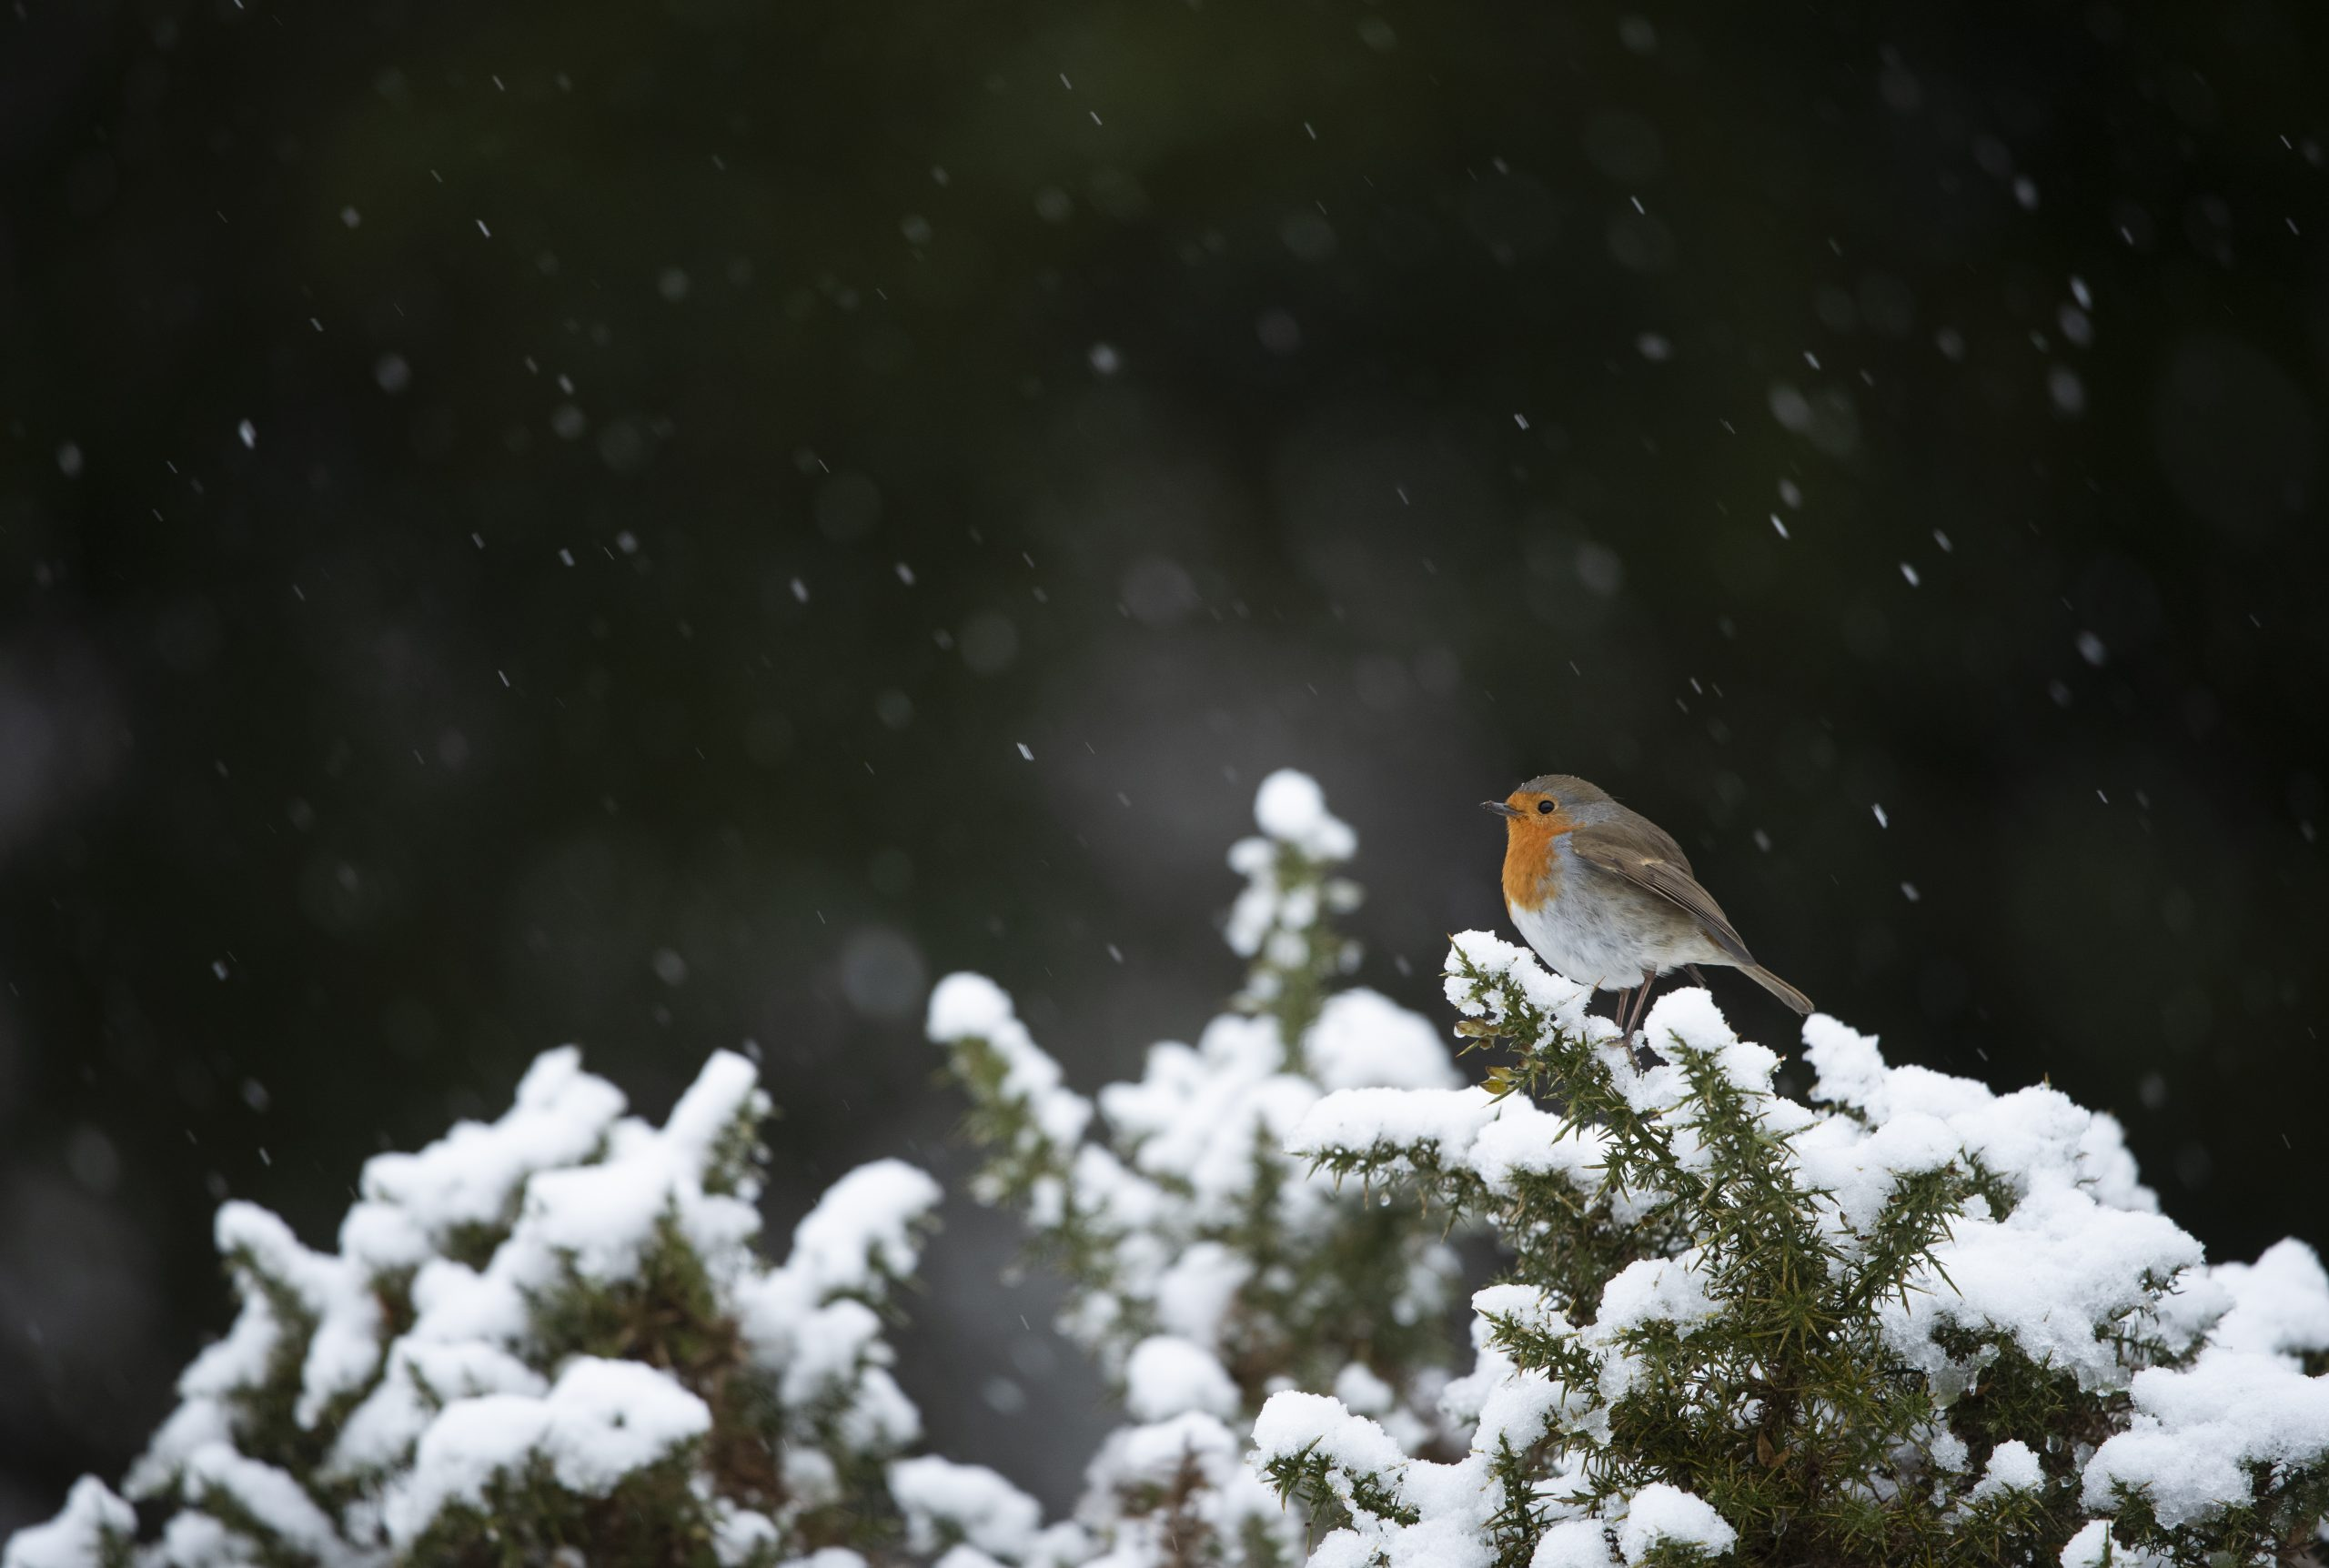 Robin resting on a snowy branch at Sherwood Forest